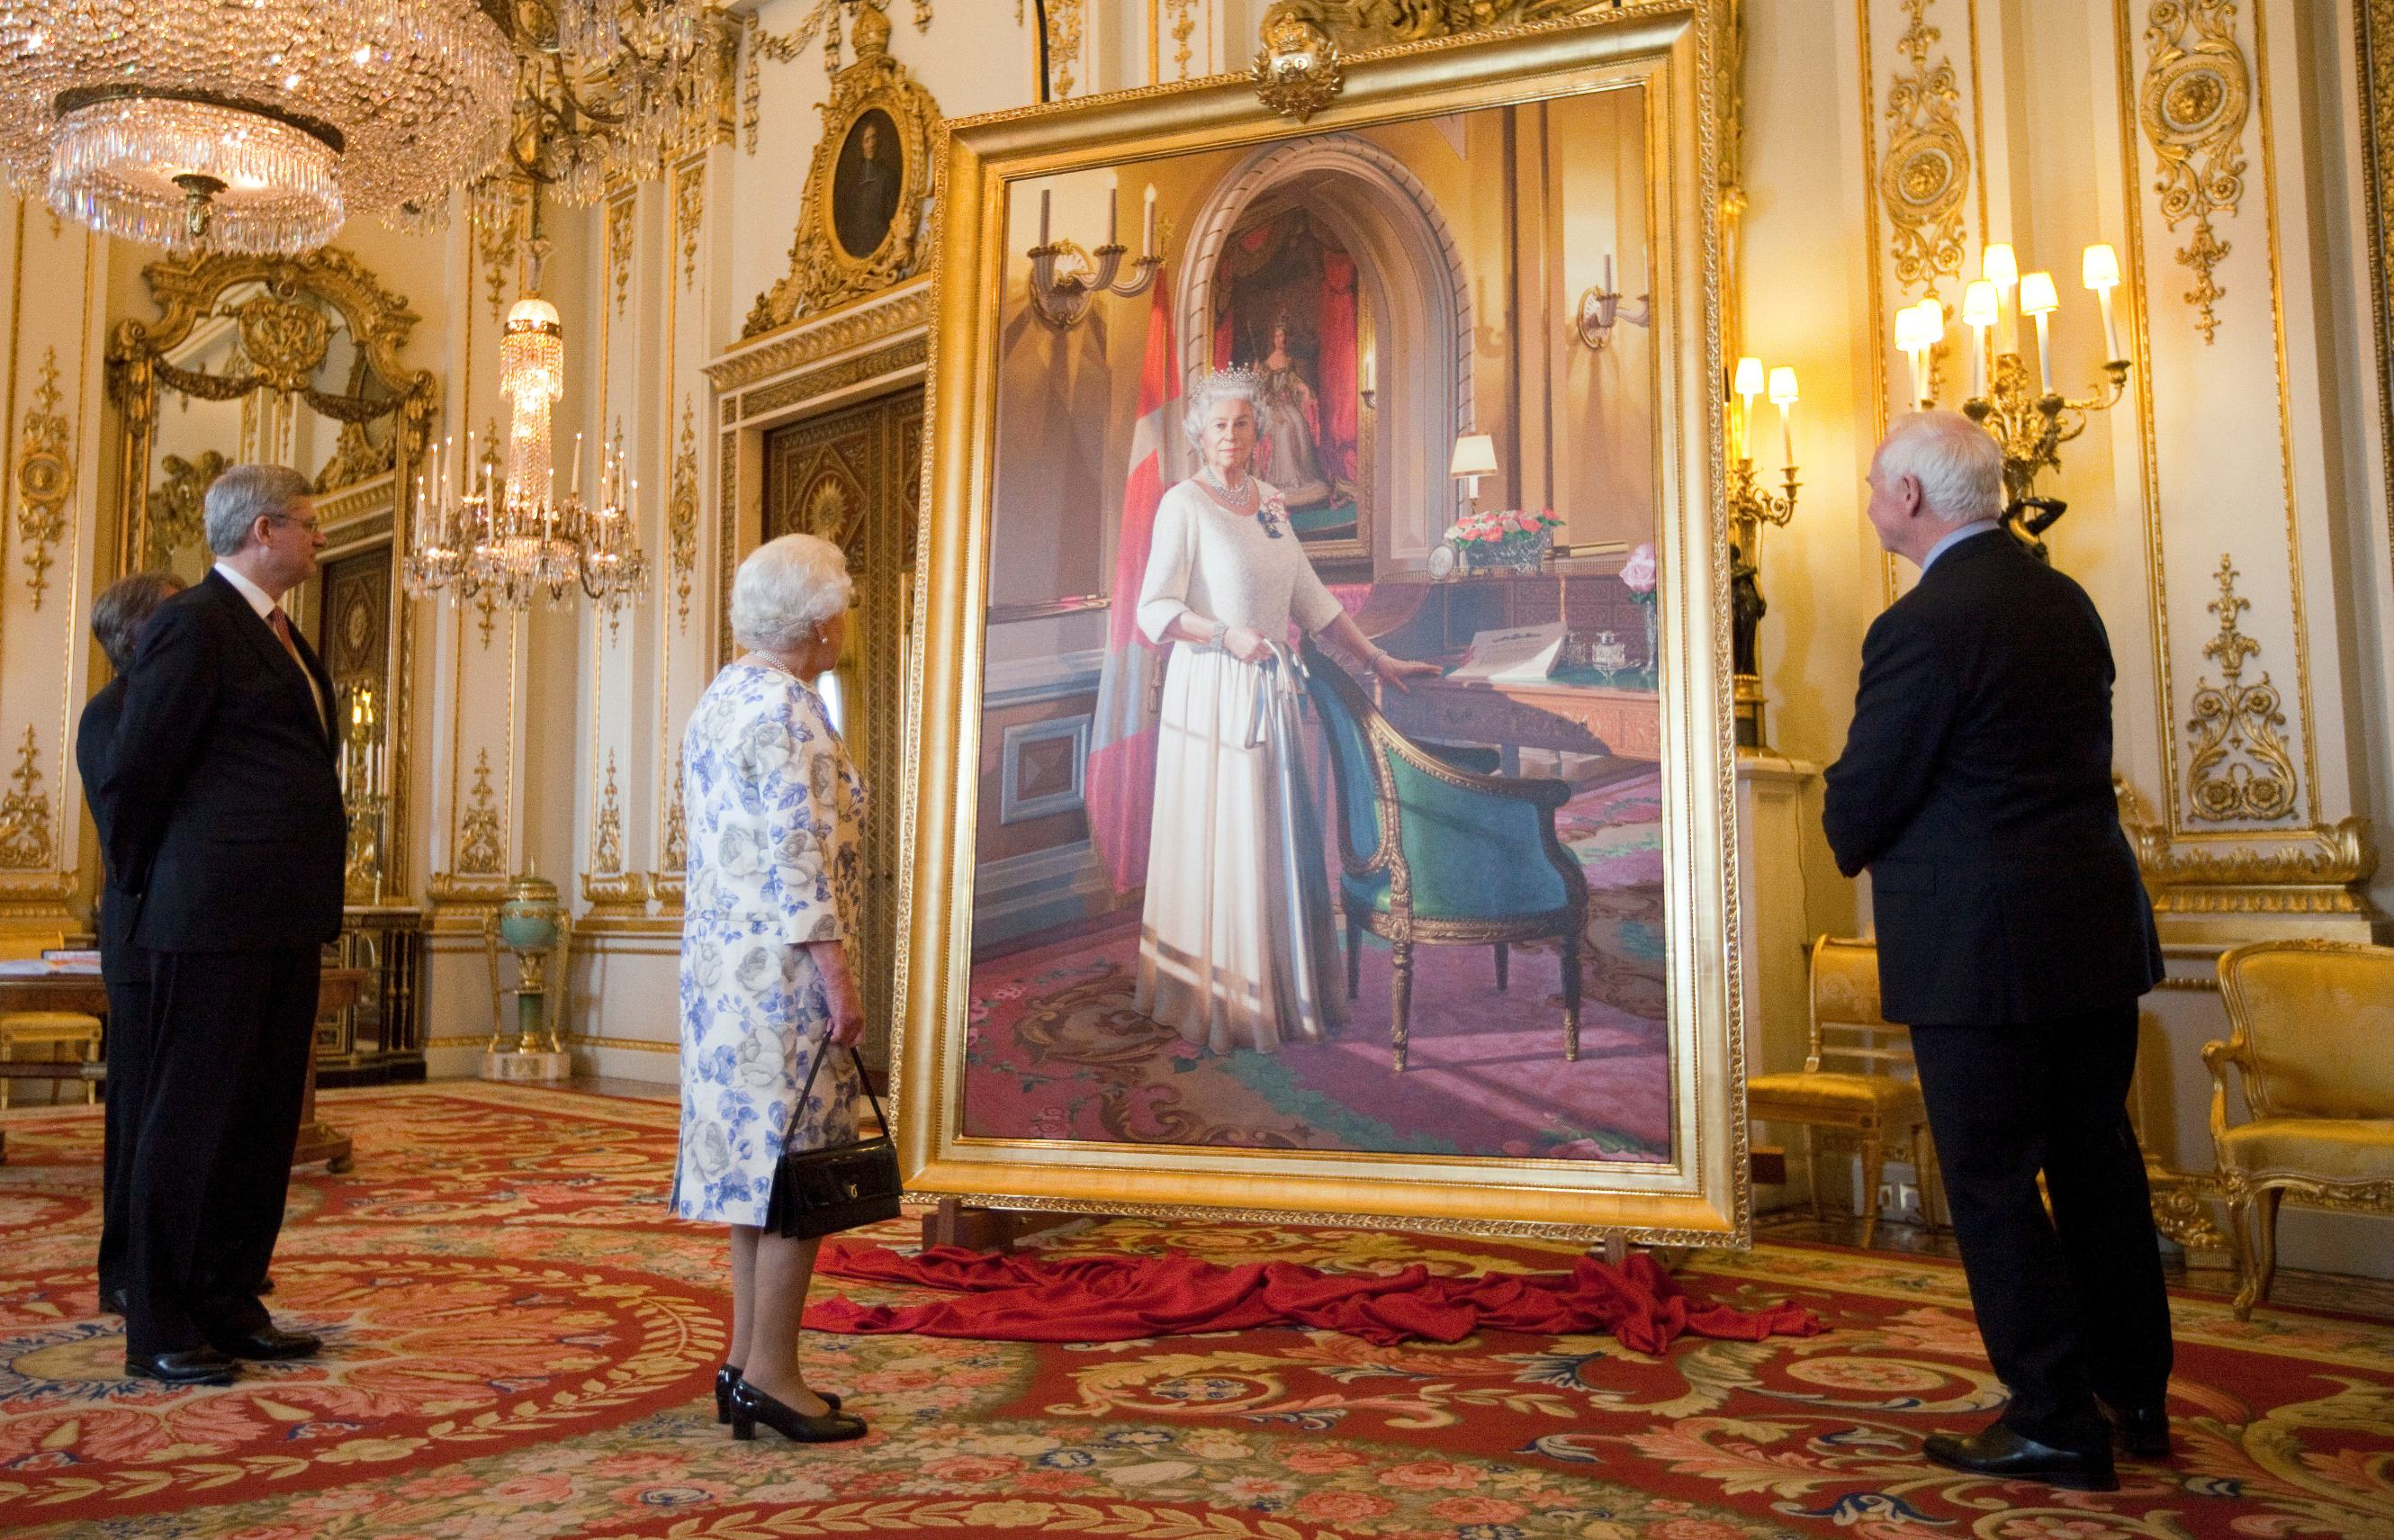 In the presence of Her Majesty Queen Elizabeth II, Their Excellencies, joined by the Right Honourable Stephen Harper, Prime Minister of Canada, witnessed the unveiling of The Queen's new portrait during a ceremony at Buckingham Palace. Rendered by artist Phil Richards, the painting was commissioned by the Government of Canada to commemorate the Queen's Diamond Jubilee.